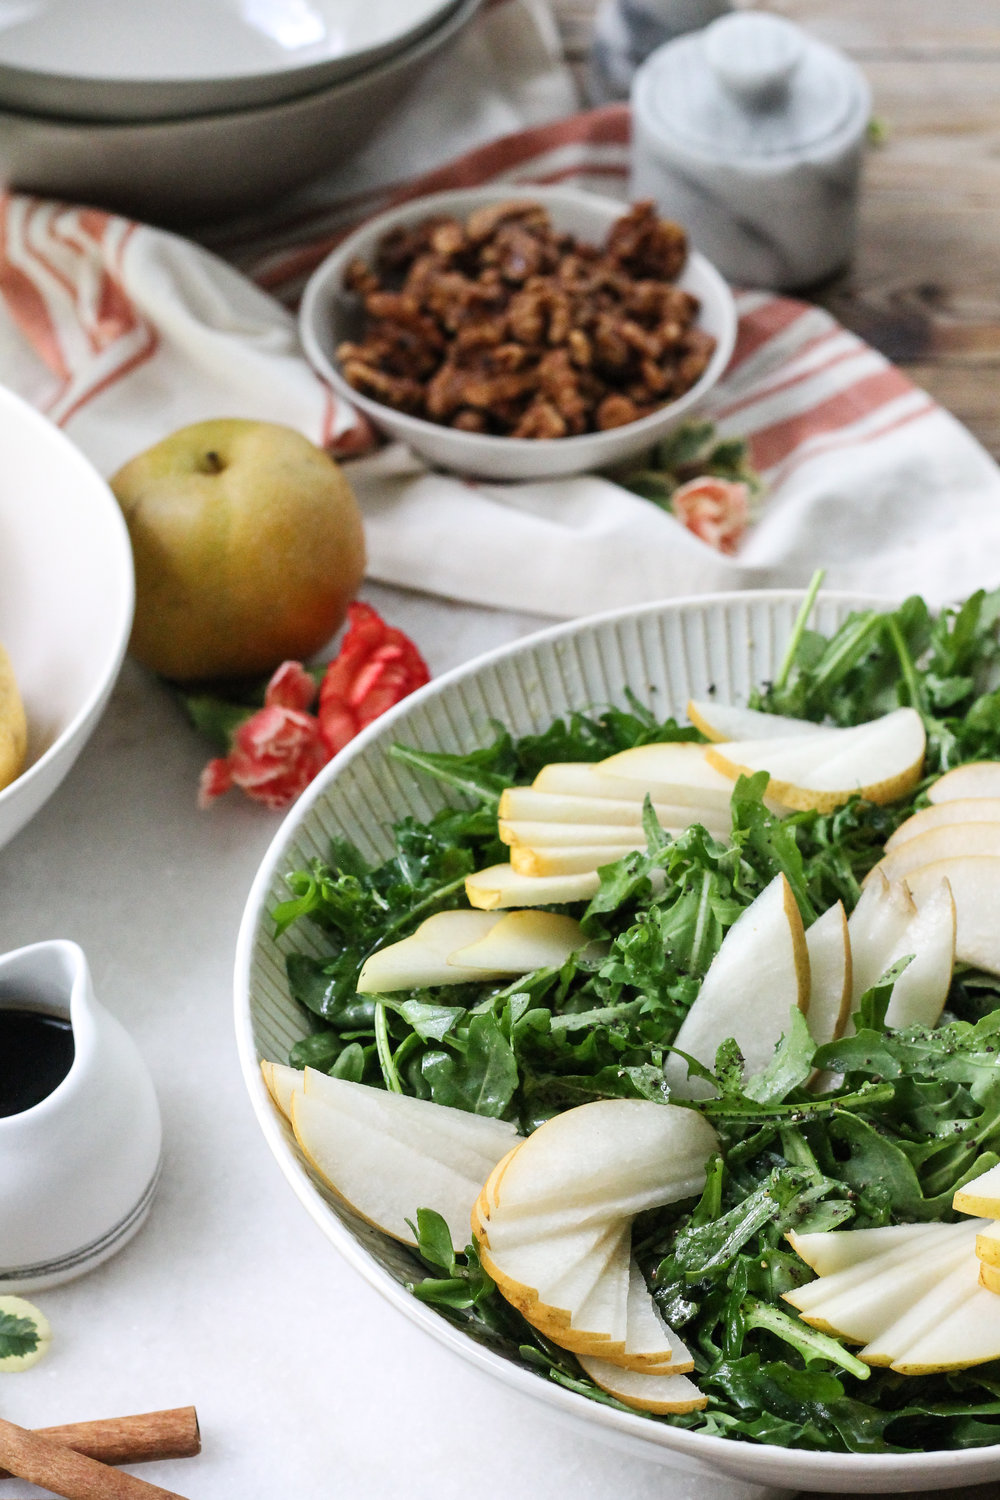 Arugula Salad with Pears, Walnuts, and Manchego [ www.pedanticfoodie.com ]